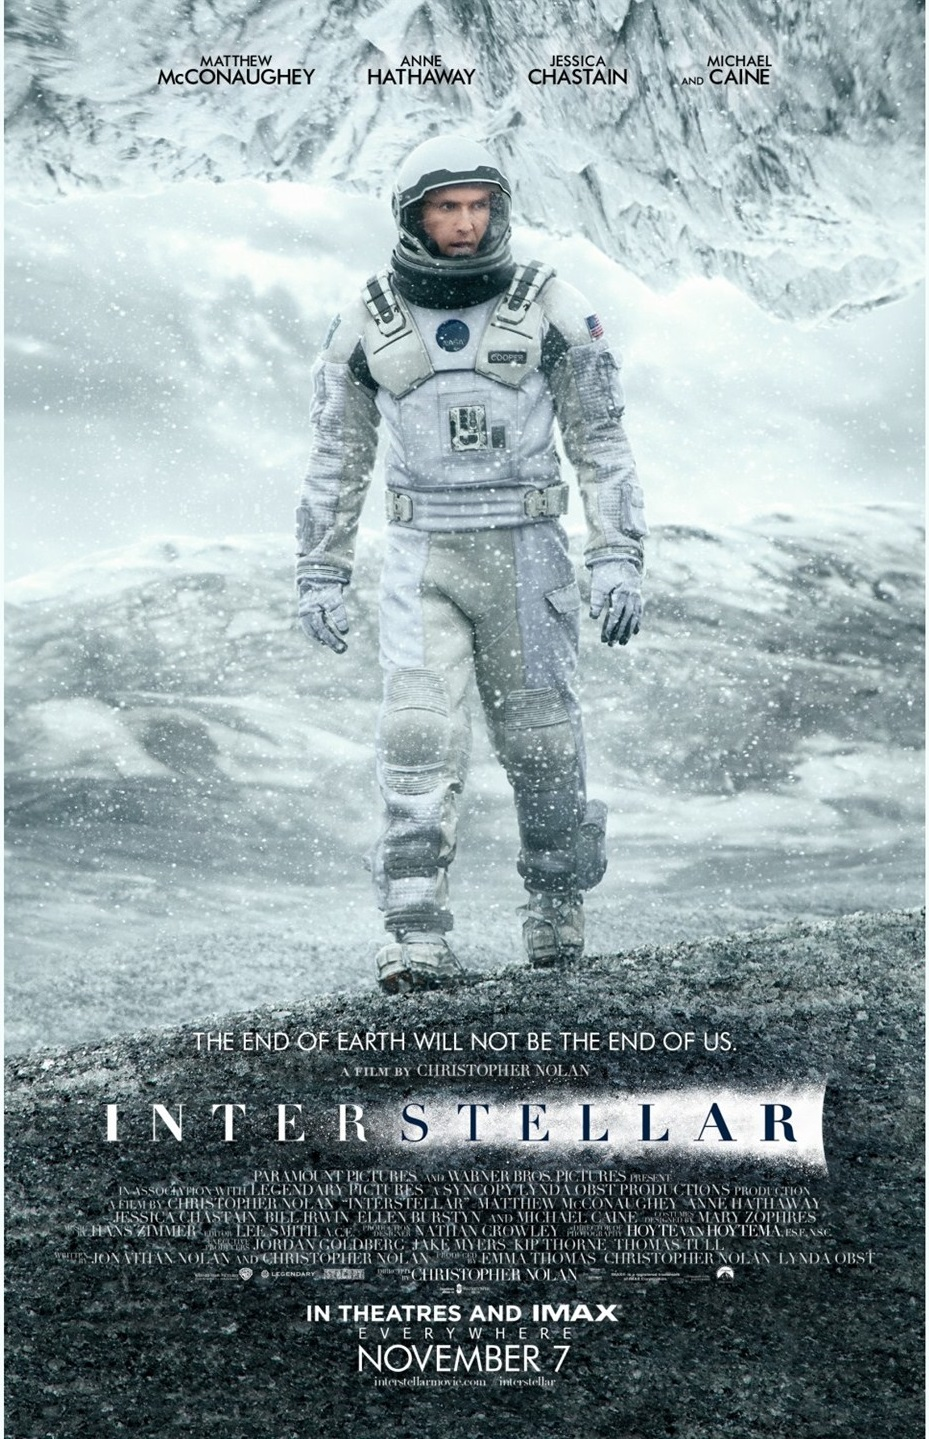 http://www.hdwallpapersimages.com/interstellar-movie-images/65553/